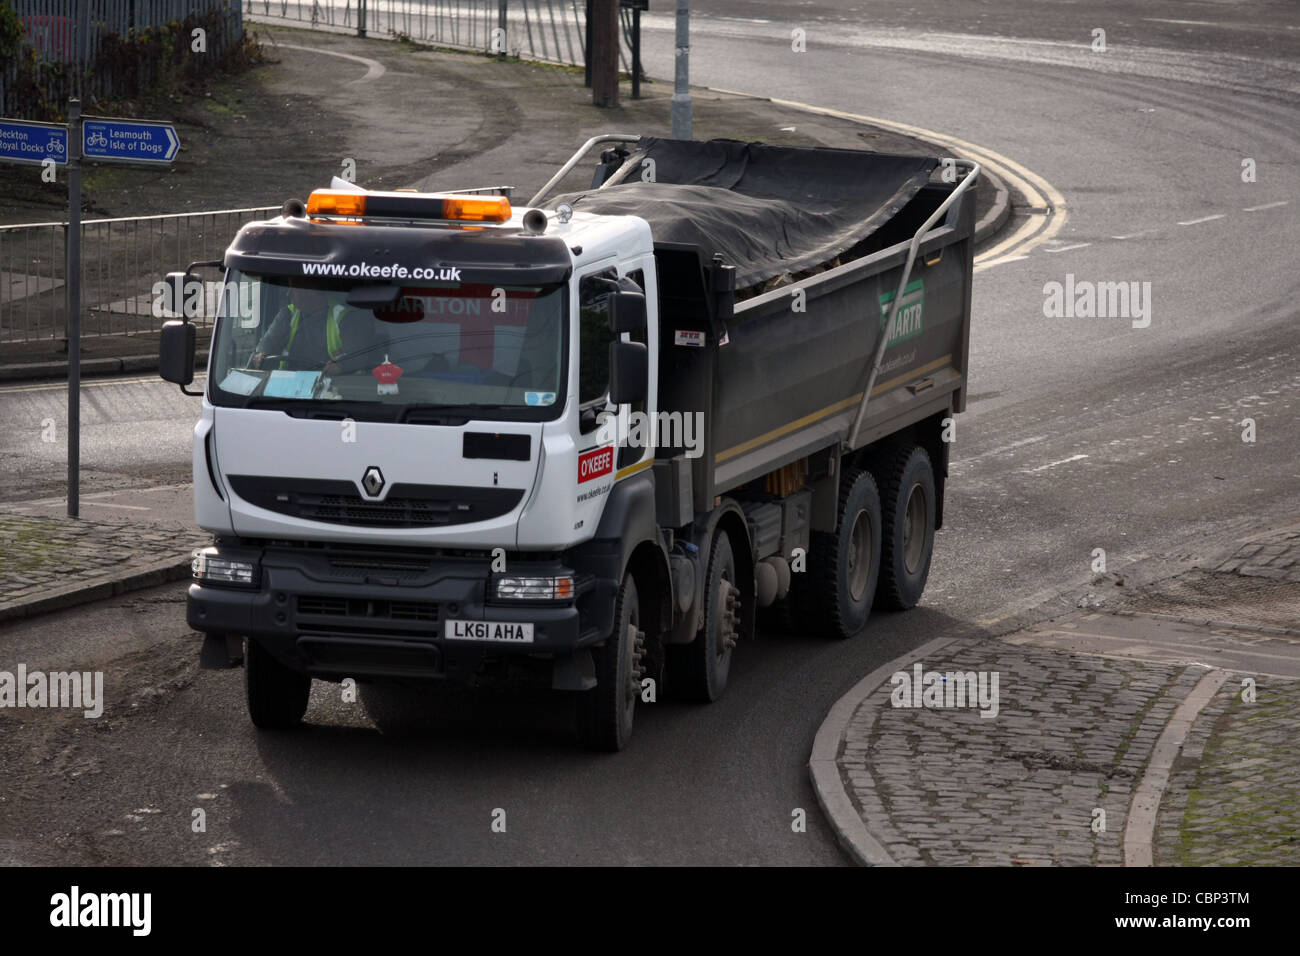 a truck entering a roundabout in London, England - Stock Image